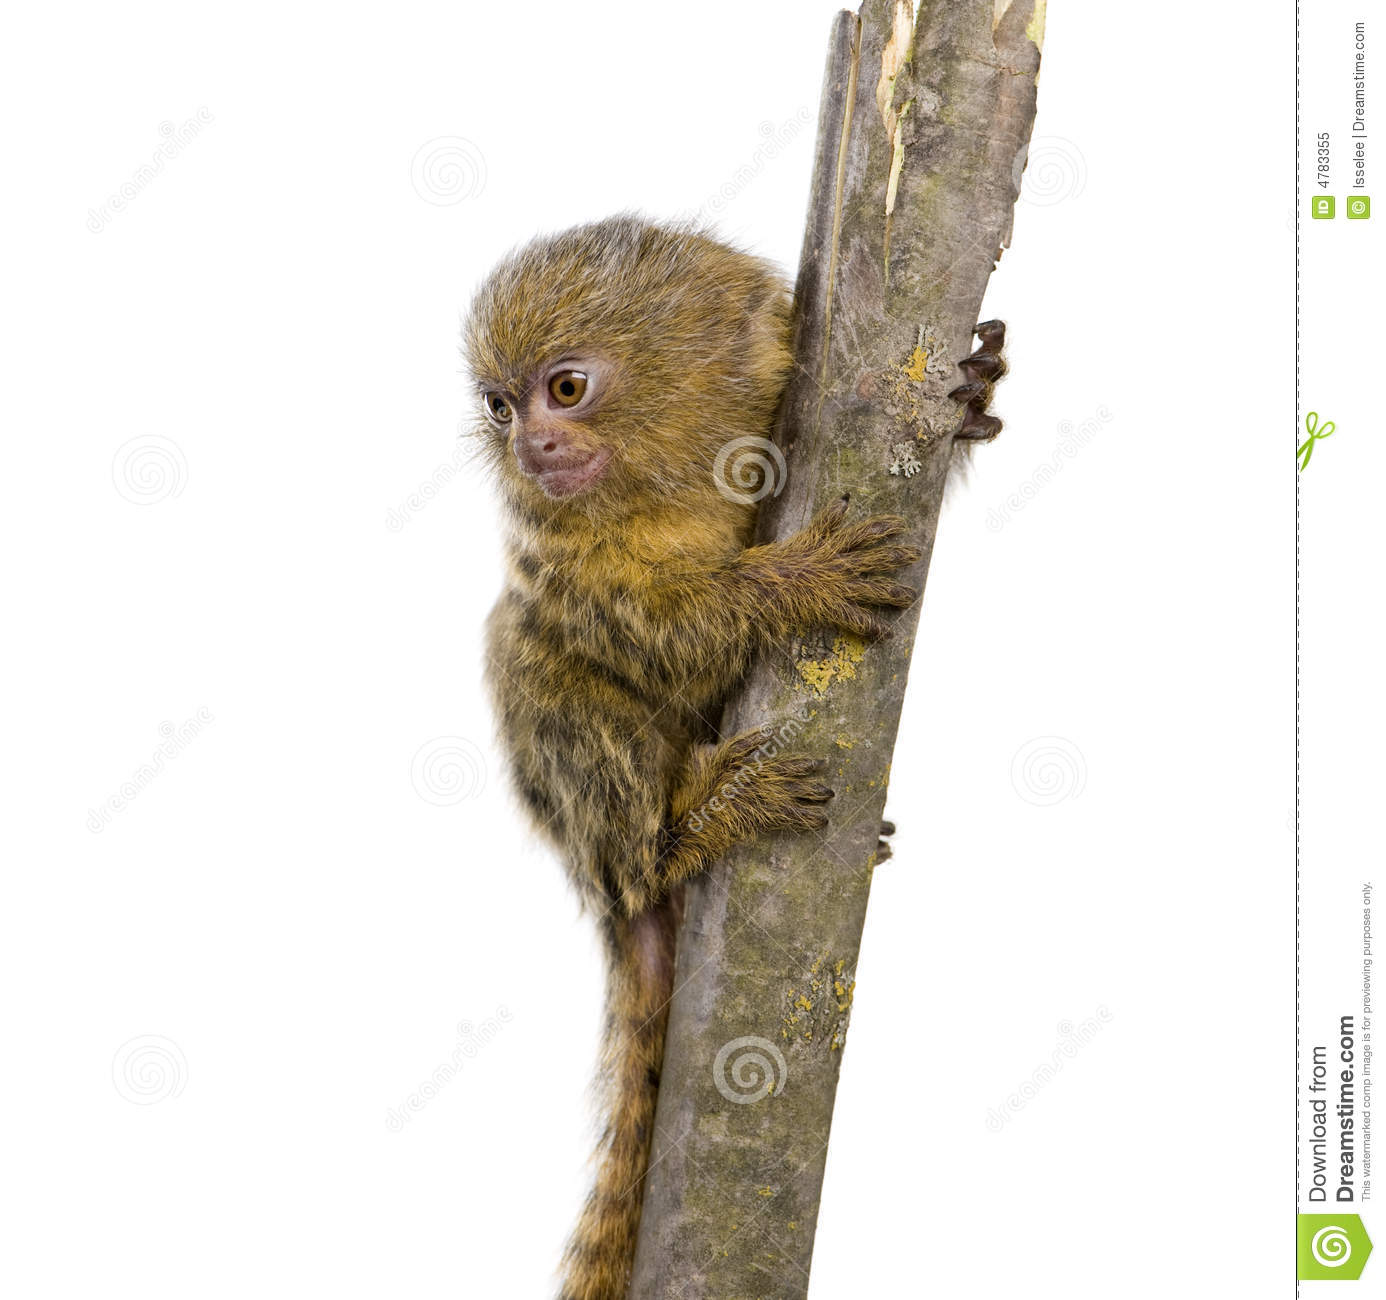 Pygmy Marmoset clipart #6, Download drawings